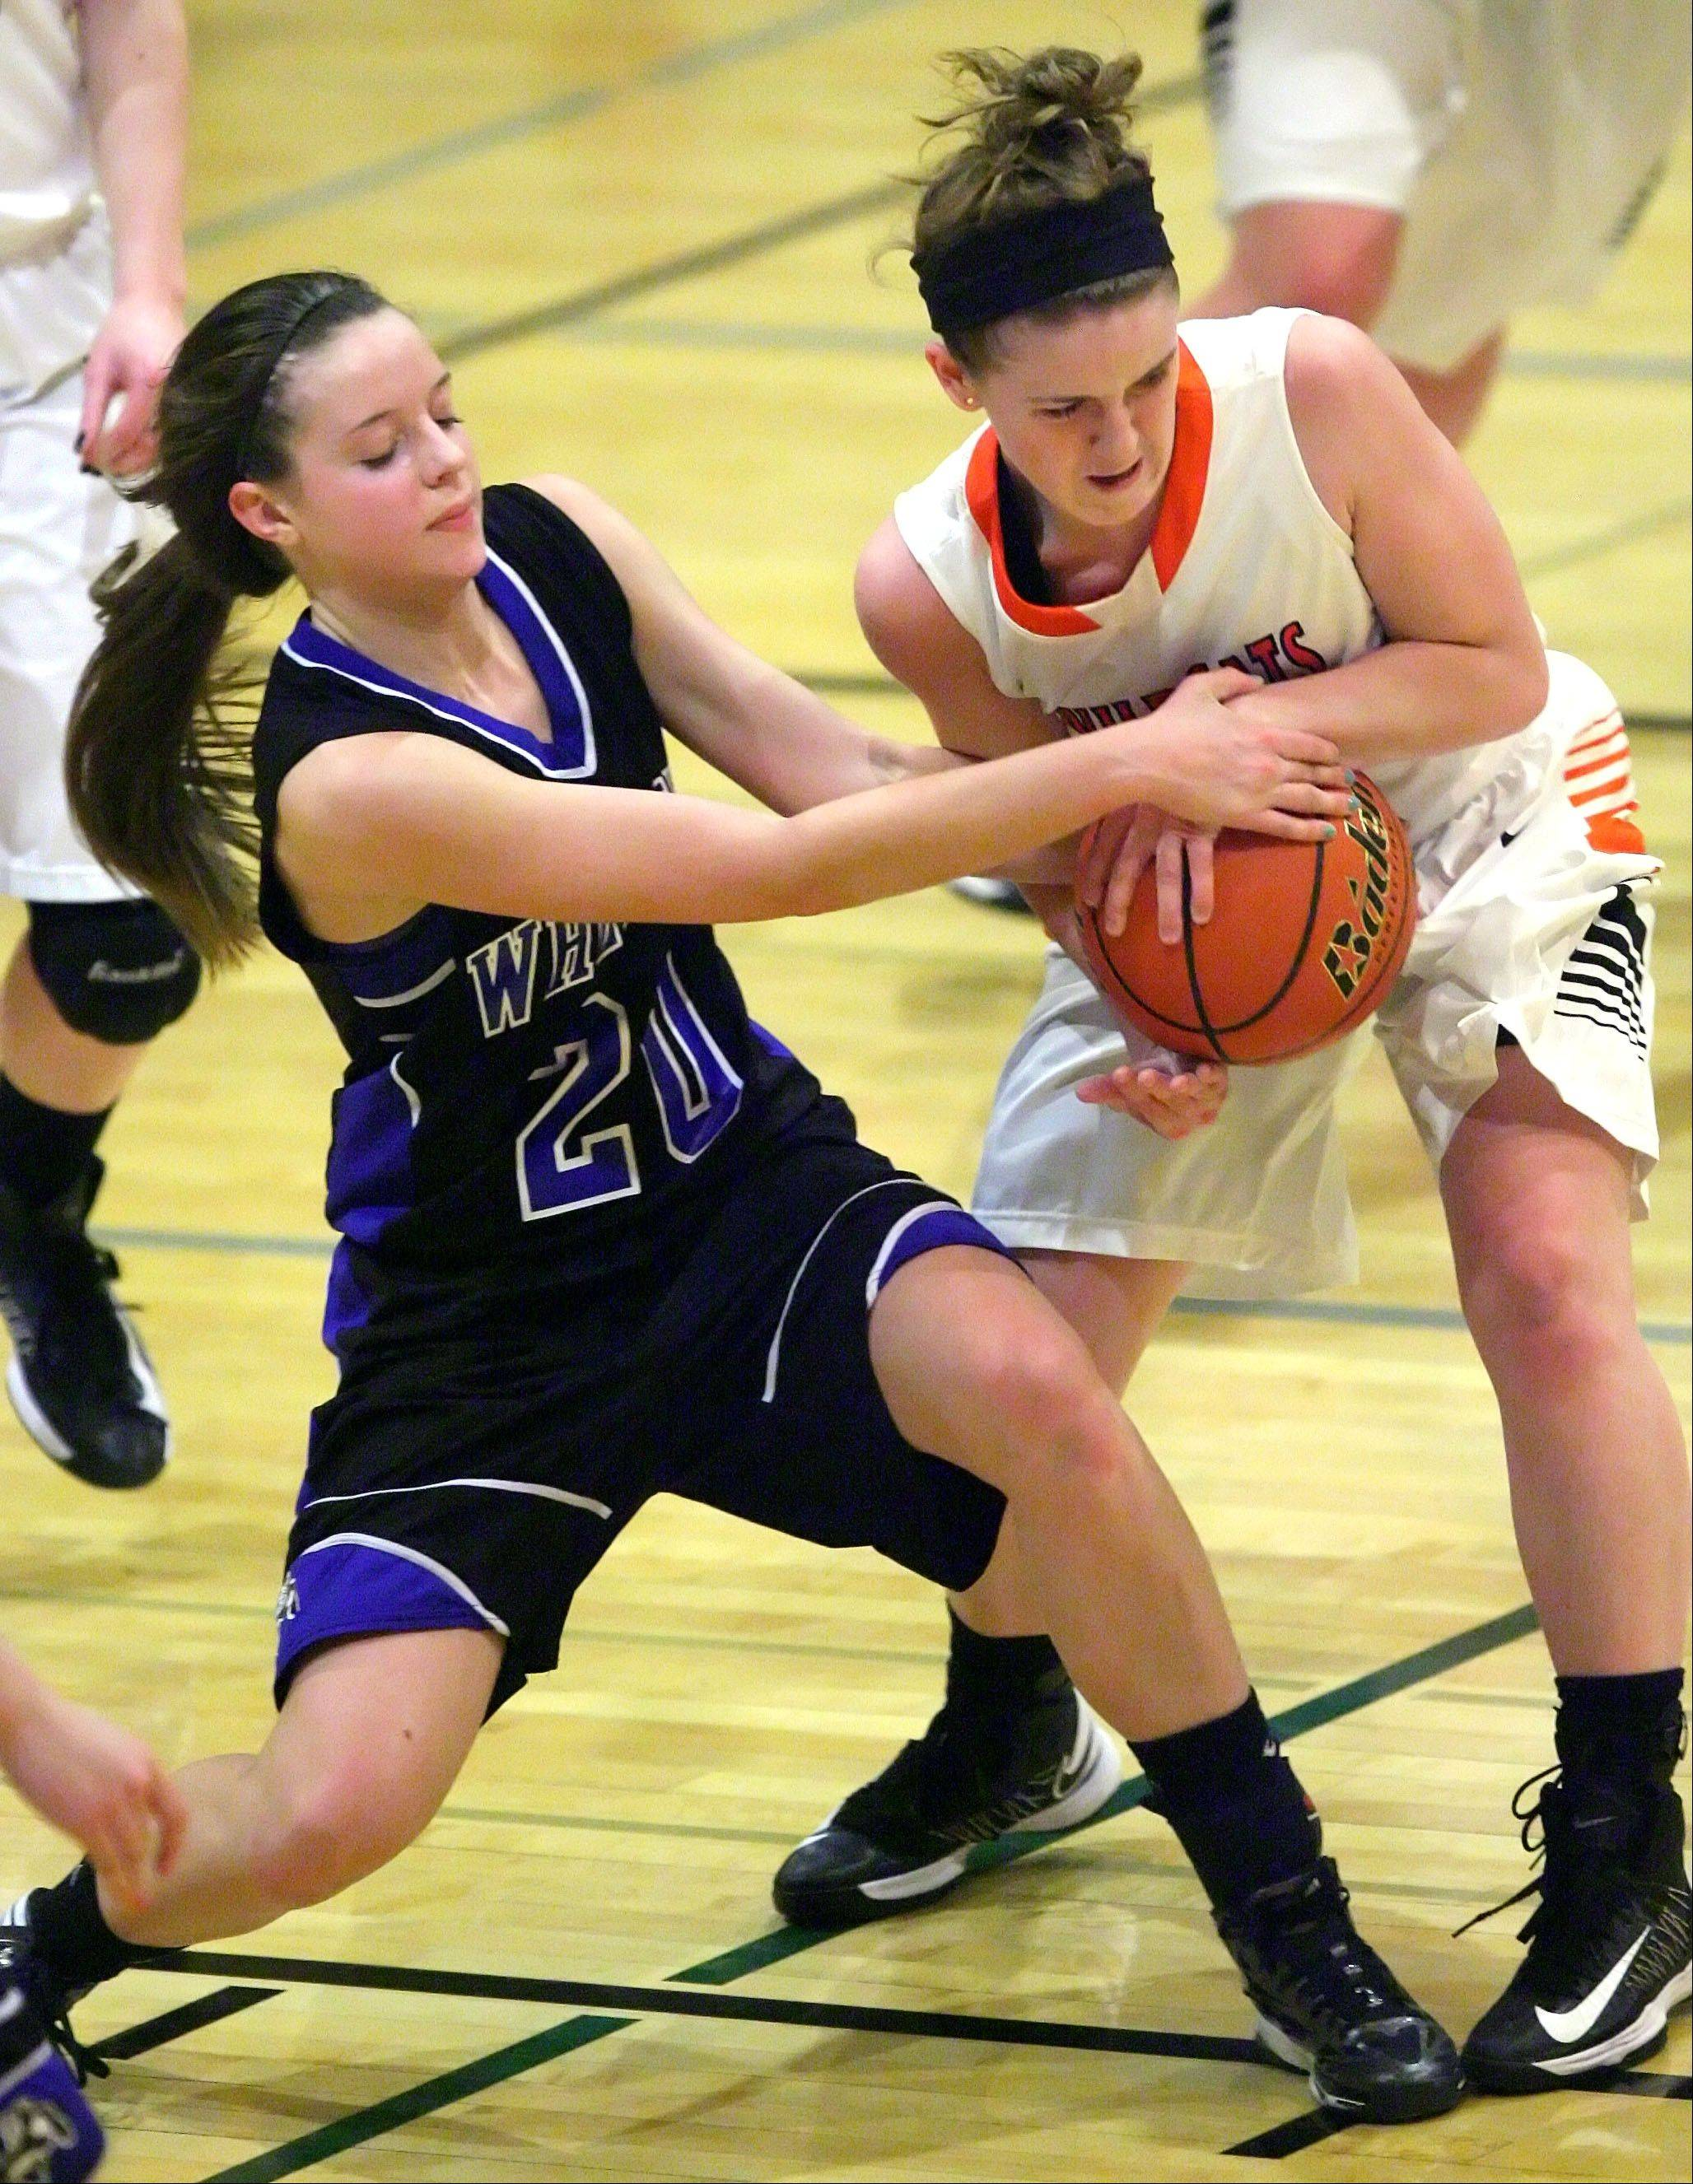 Steve Lundy/slundy@dailyherald.comWheeling's Elizabeth Smith, left, and Libertyville's Rosie Lynch battle for a loose ball during a Class 4A regional play-in game Monday night at Wheeling.